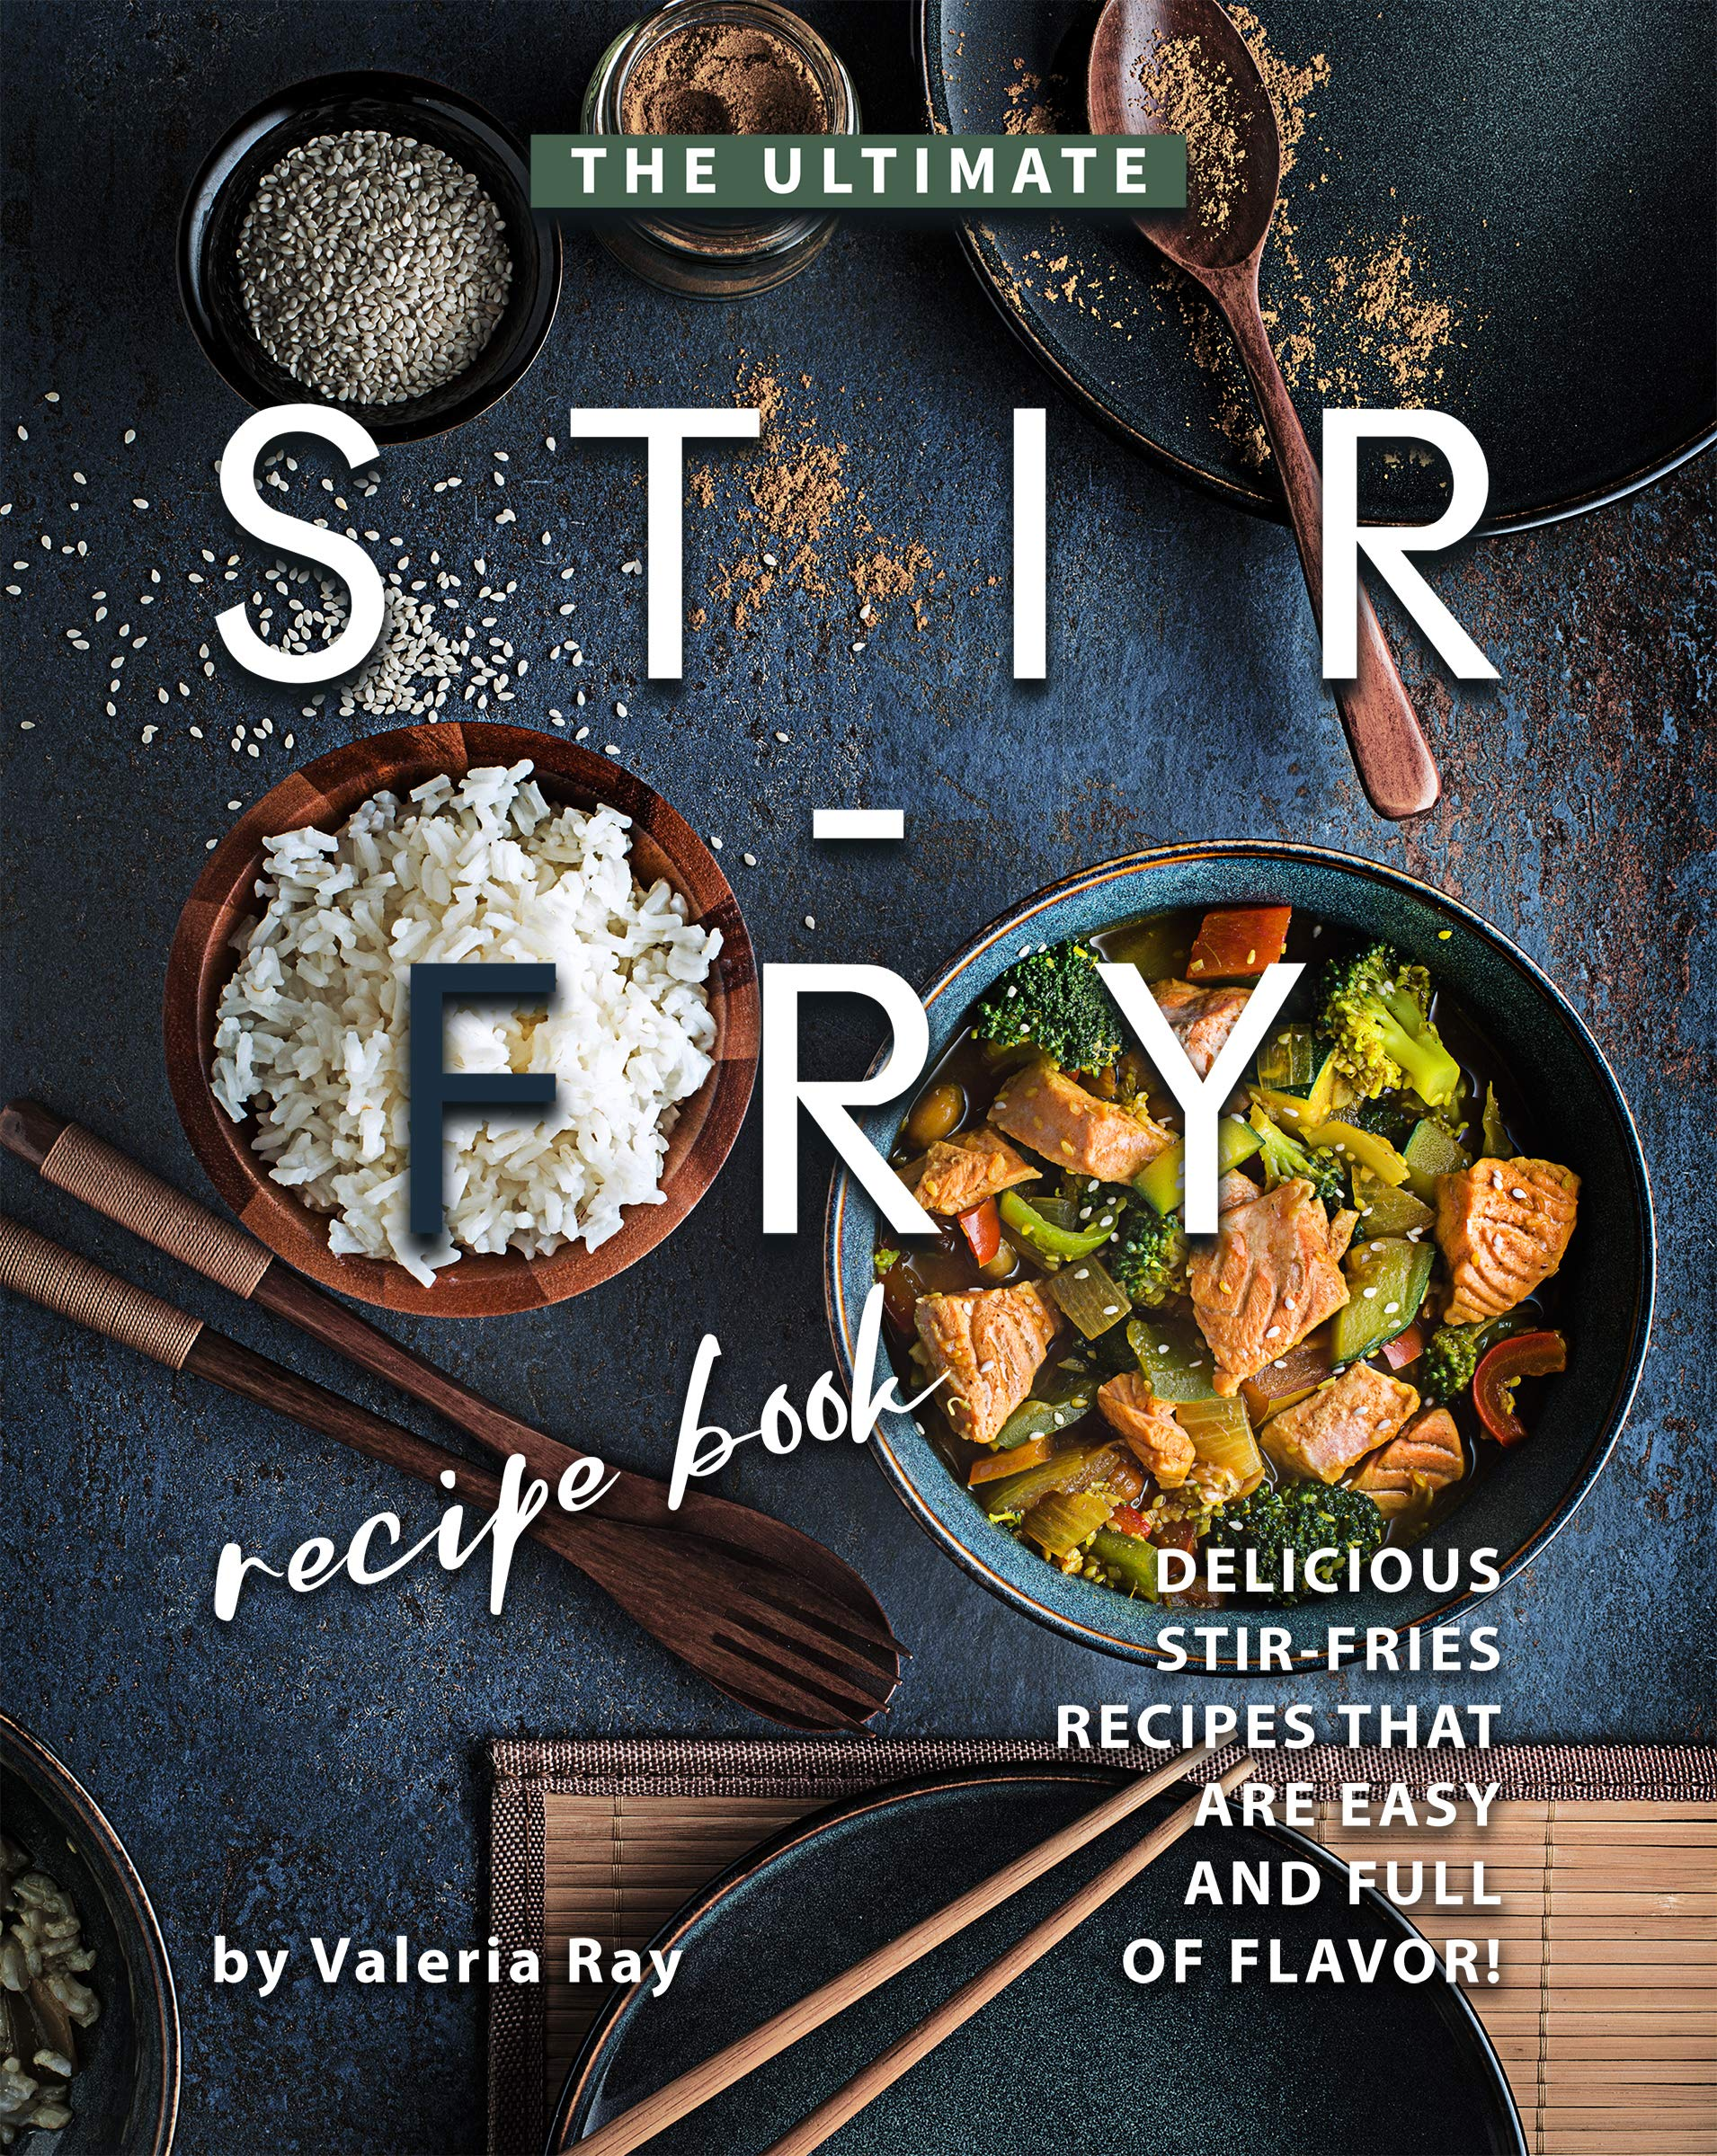 The Ultimate Stir-Fry Recipe Book: Delicious Stir-Fries Recipes That Are Easy and Full of Flavor!